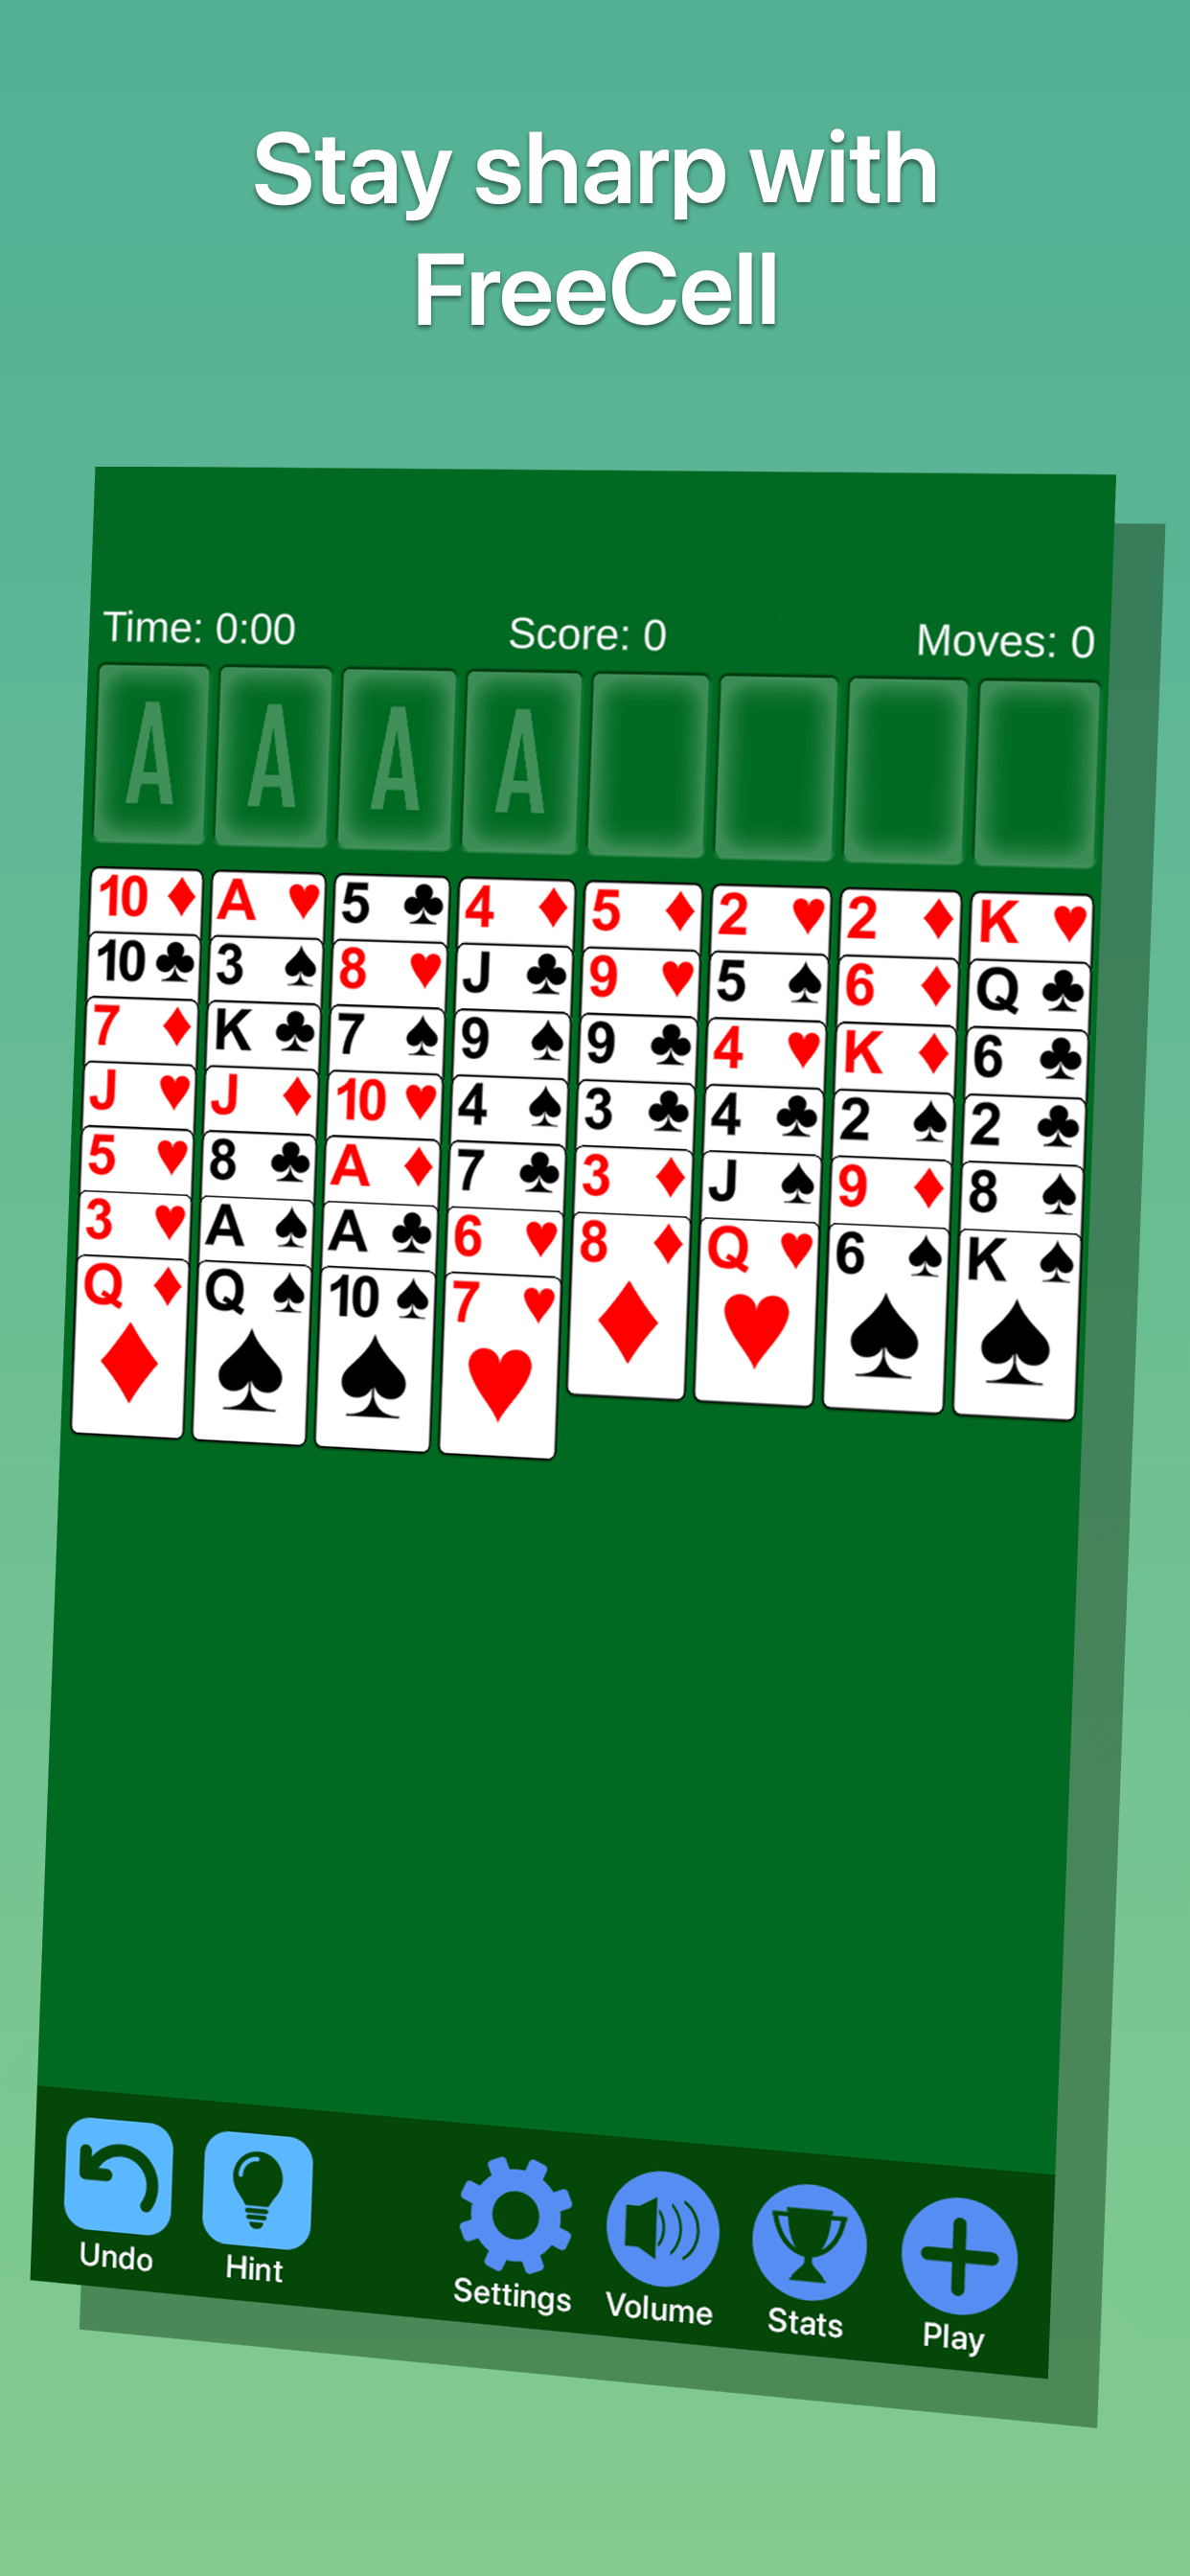 FreeCell Solitaire Game Screenshot